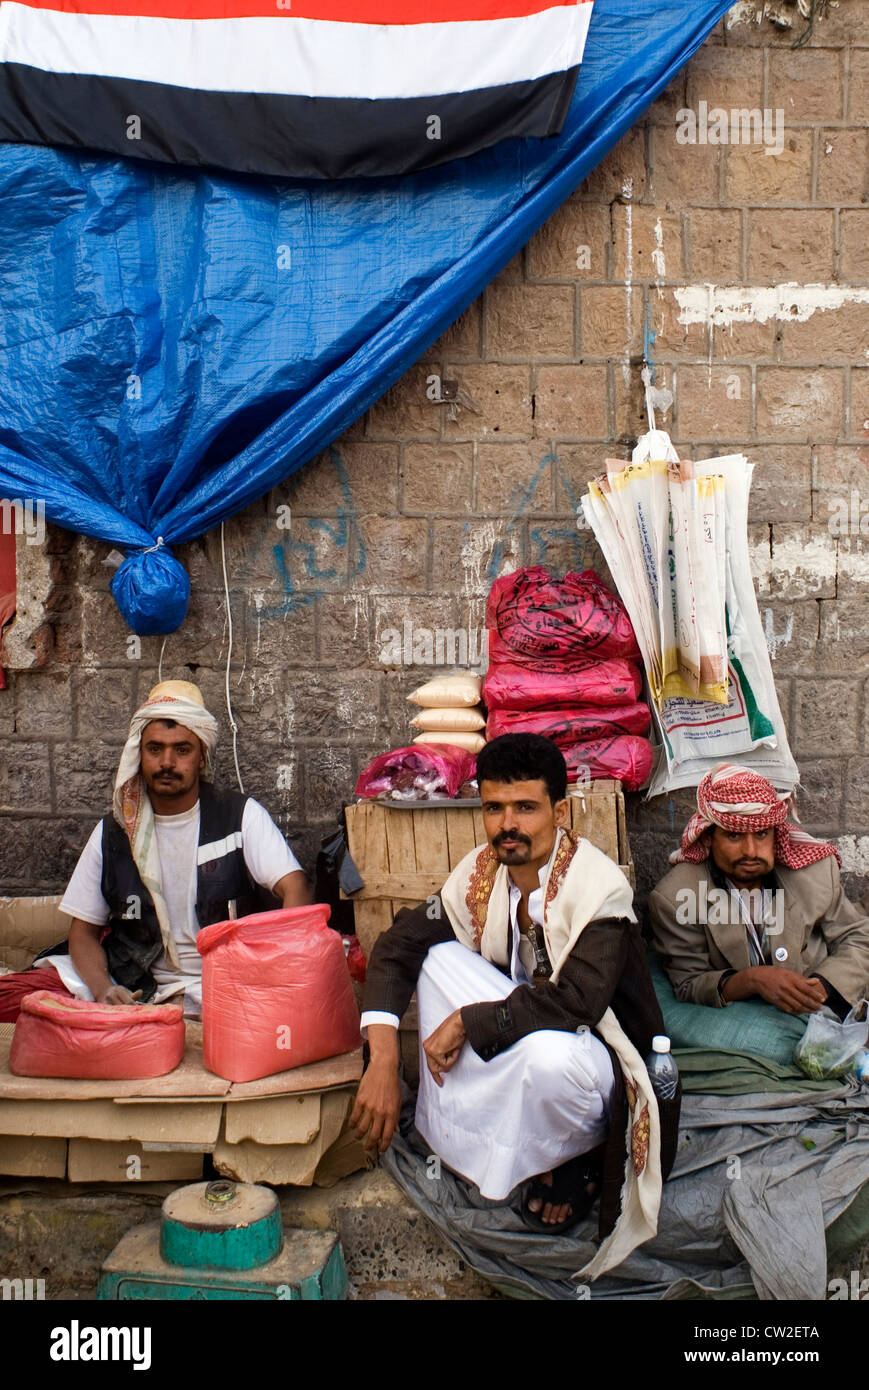 Stallholders in Bab Al Yemen in the old city of Sana'a, a UNESCO World Heritage Site, Yemen, Western Asia, Arabian - Stock Image